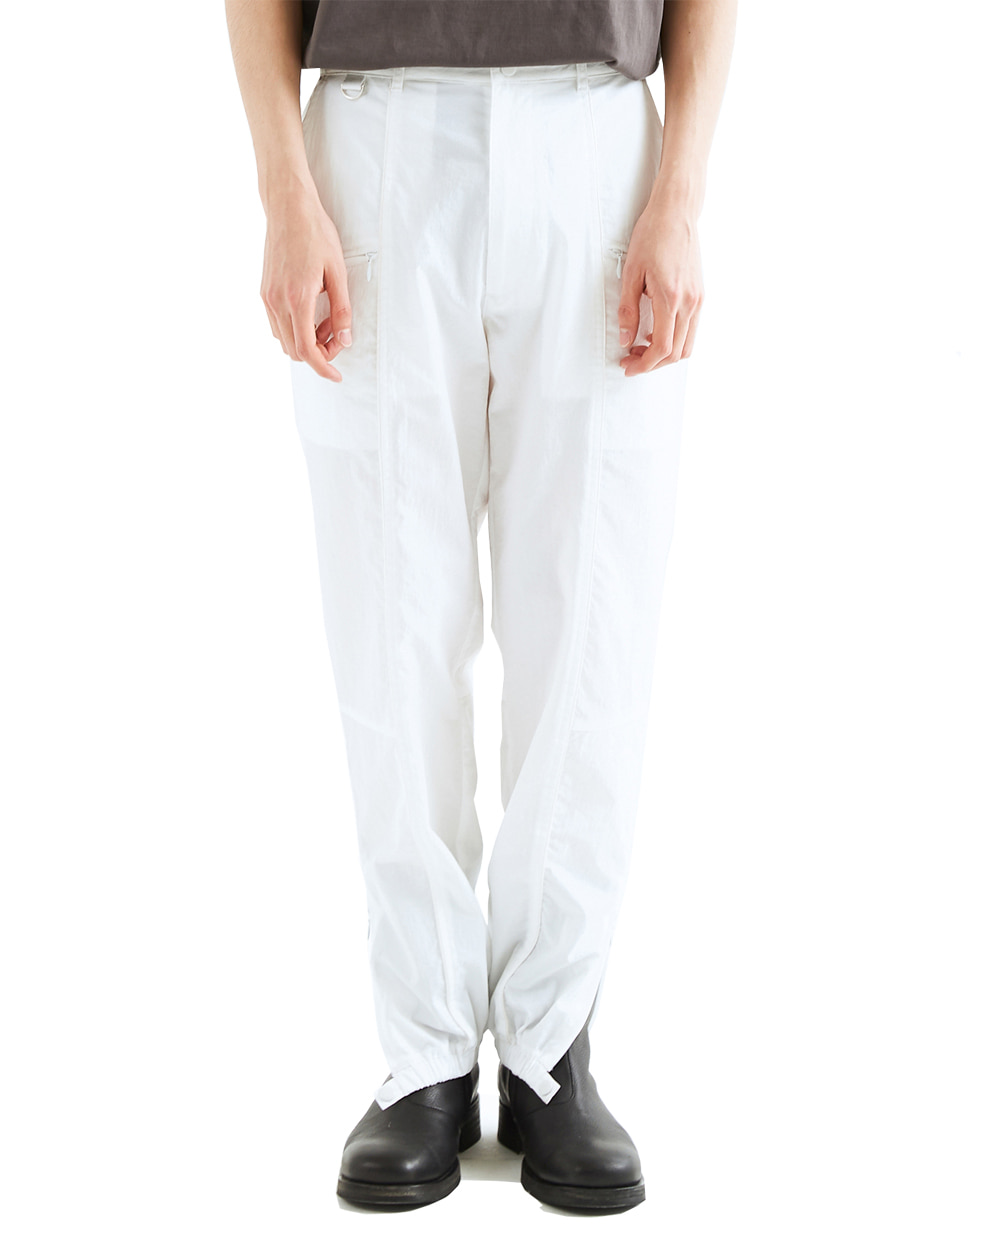 ATESTUDIOS SLIT ZIP TRACK PANTS (White)